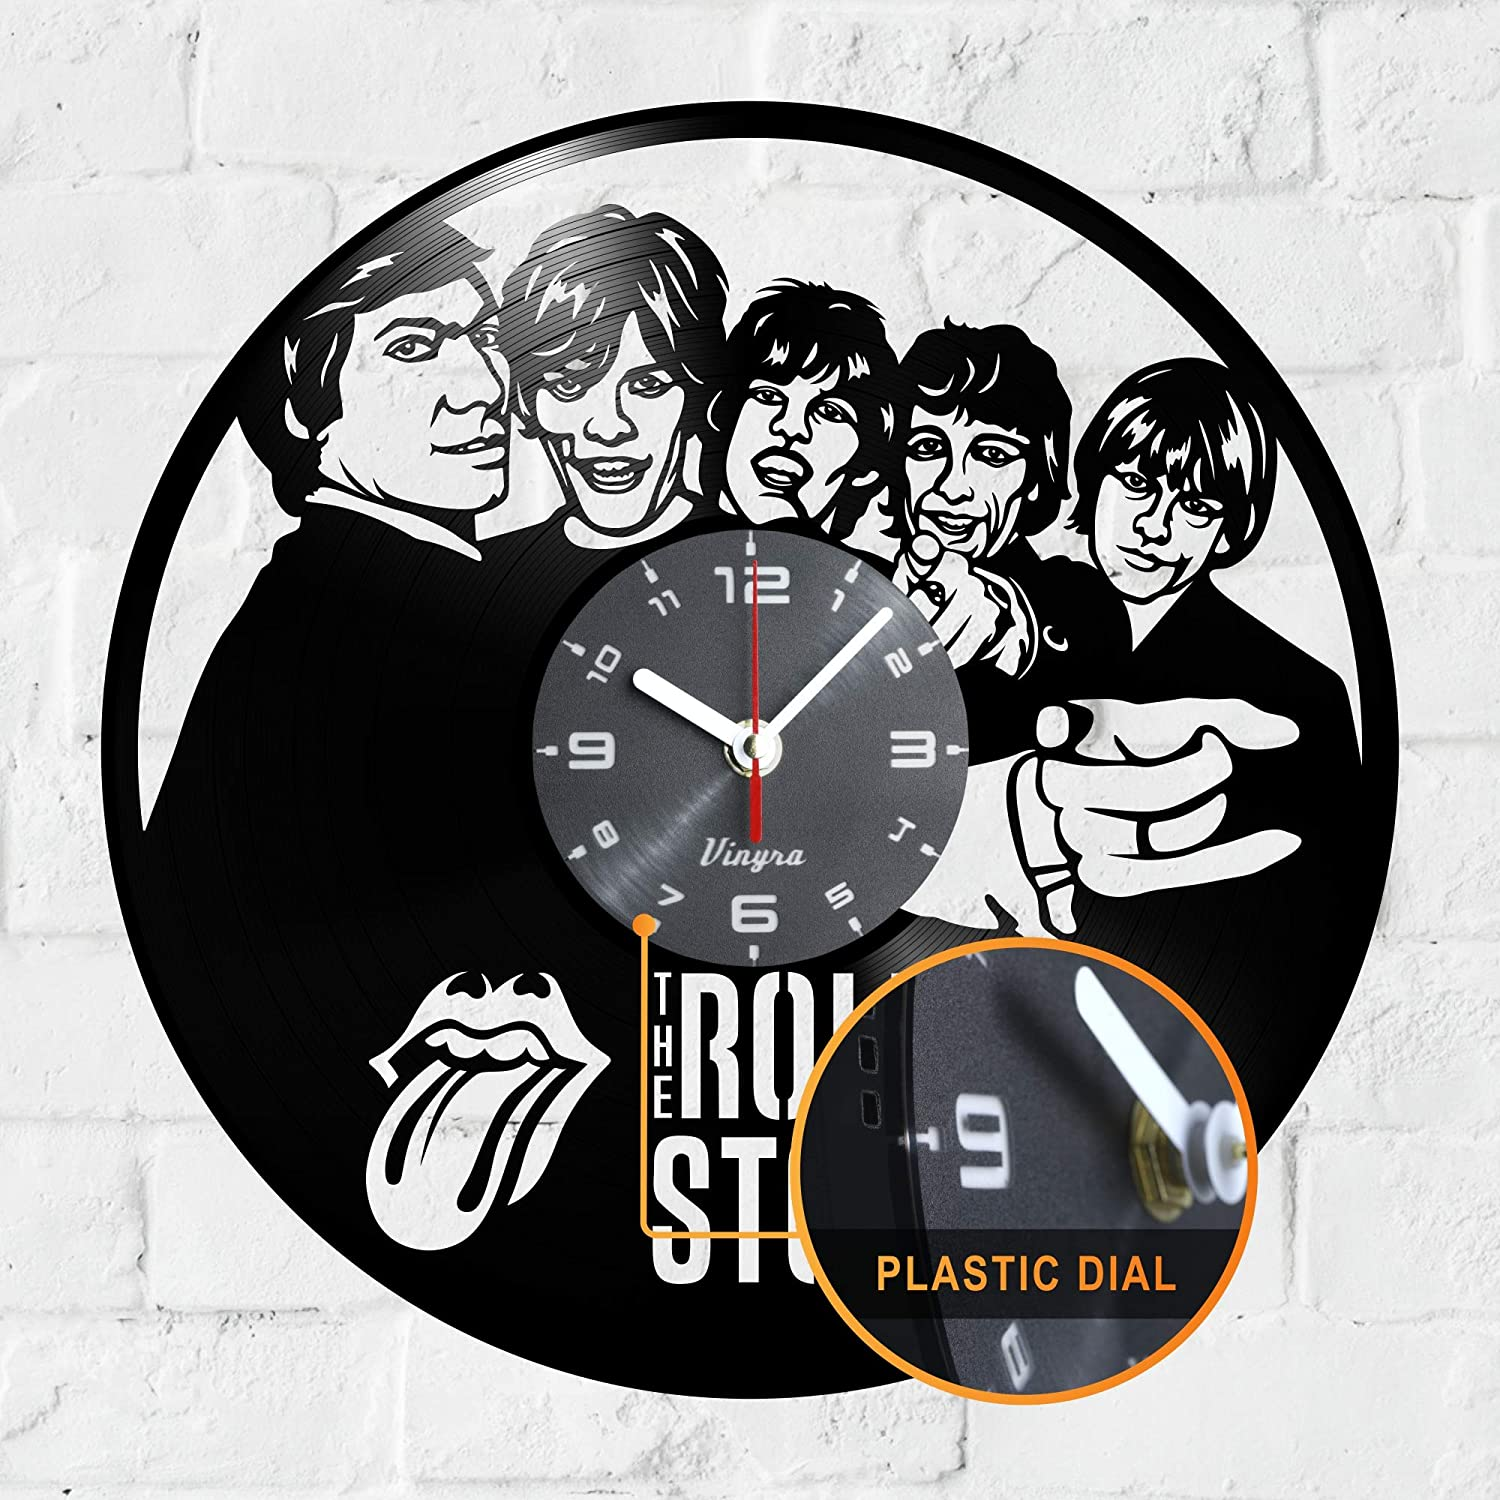 "Vinyra Vinyl Wall Clock compatible with Rolling Stones Mick Jagger Themed Vintage Home - Gift Set Idea for Retro Rock Music Lovers, Men, Women, Her, Him - Room Wall Art Decor 12"" LP Record Clock Black"